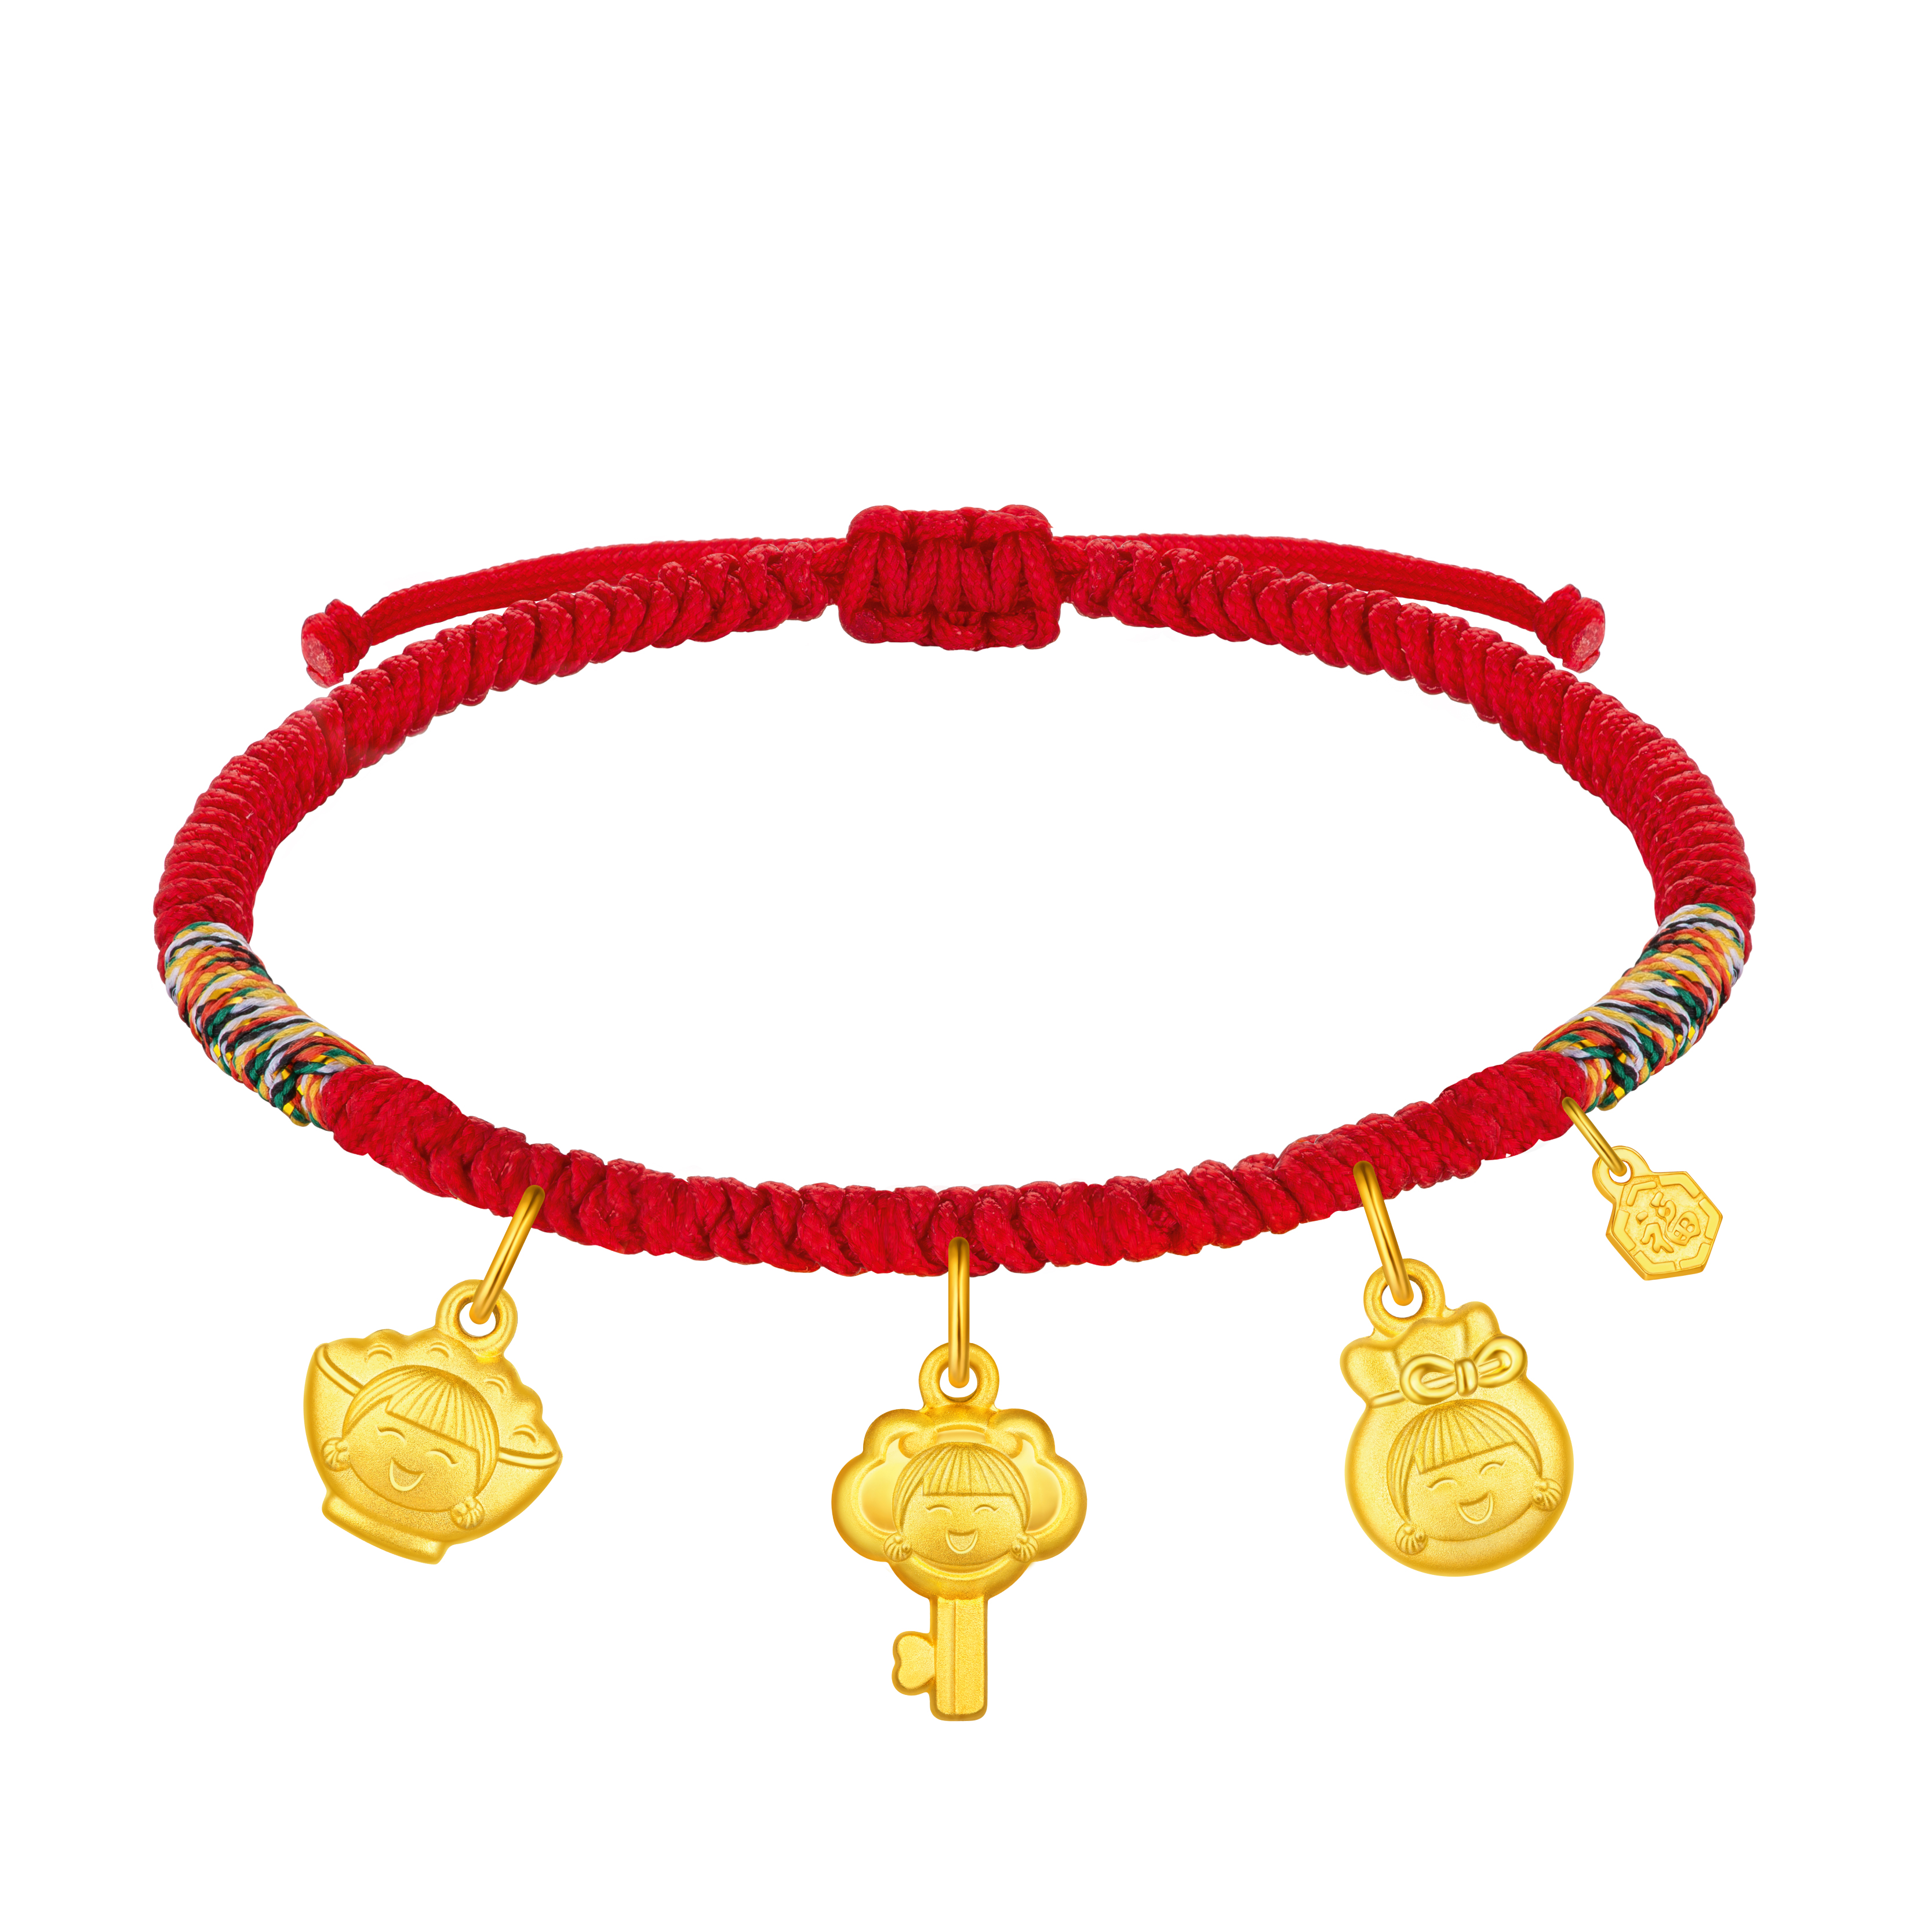 """Hugging Family Ting ting """"Auspicious Treasures"""" (Gold Bowl, Gold Key,Gold Lucky Bag) Gold Cord Bracelet"""